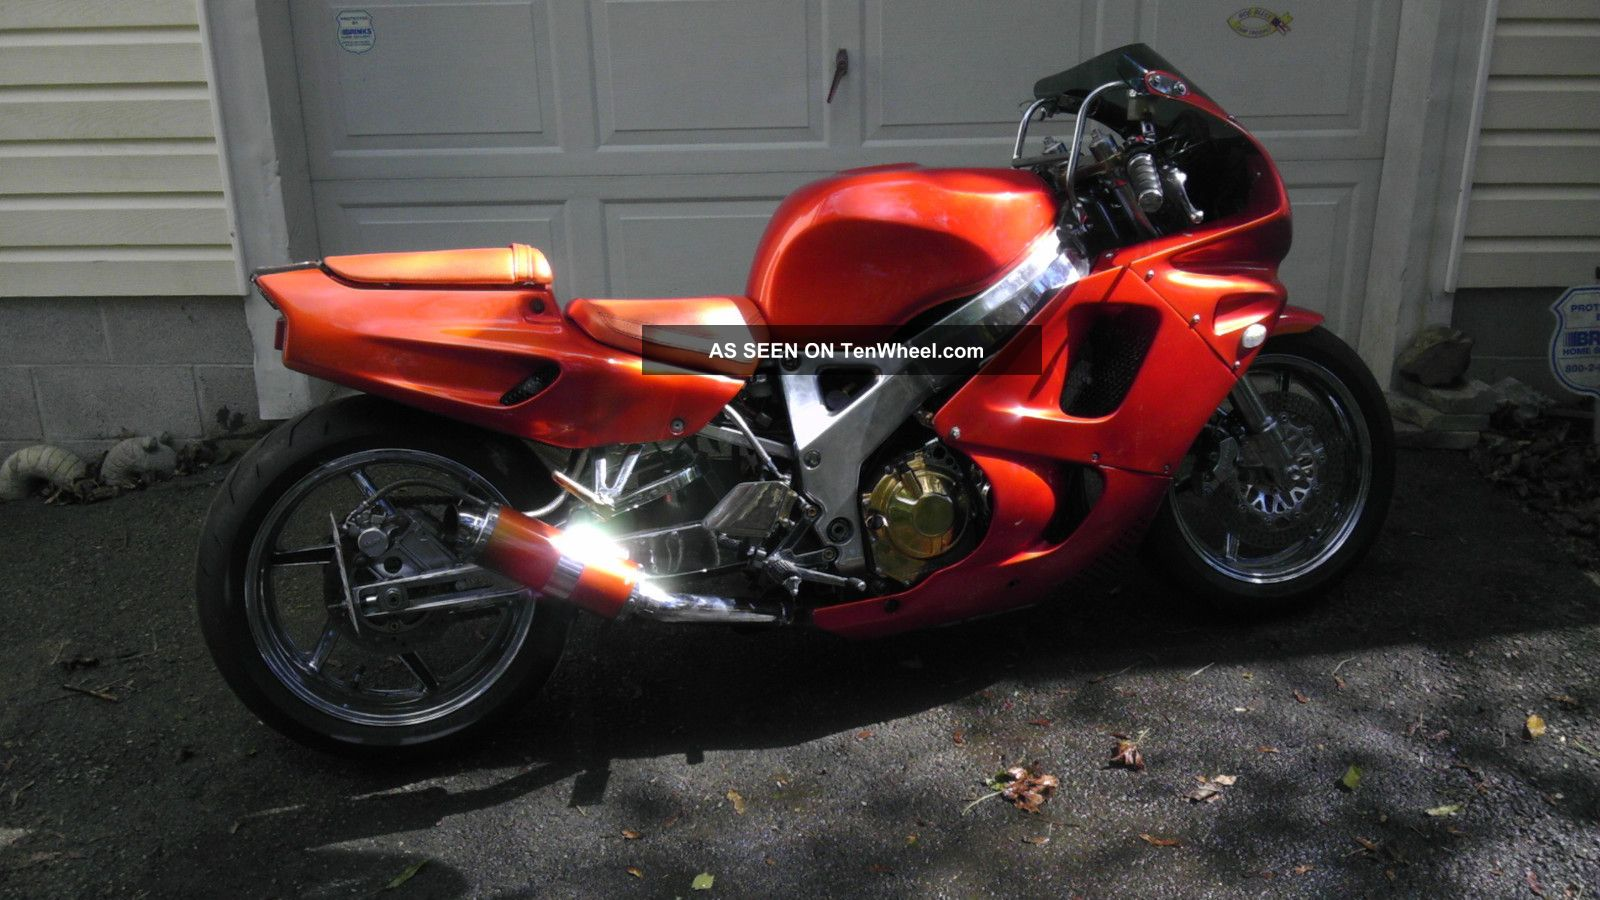 92 Cbr900rr Wiring Diagram Data Schematics Ignition Sephia Images Gallery